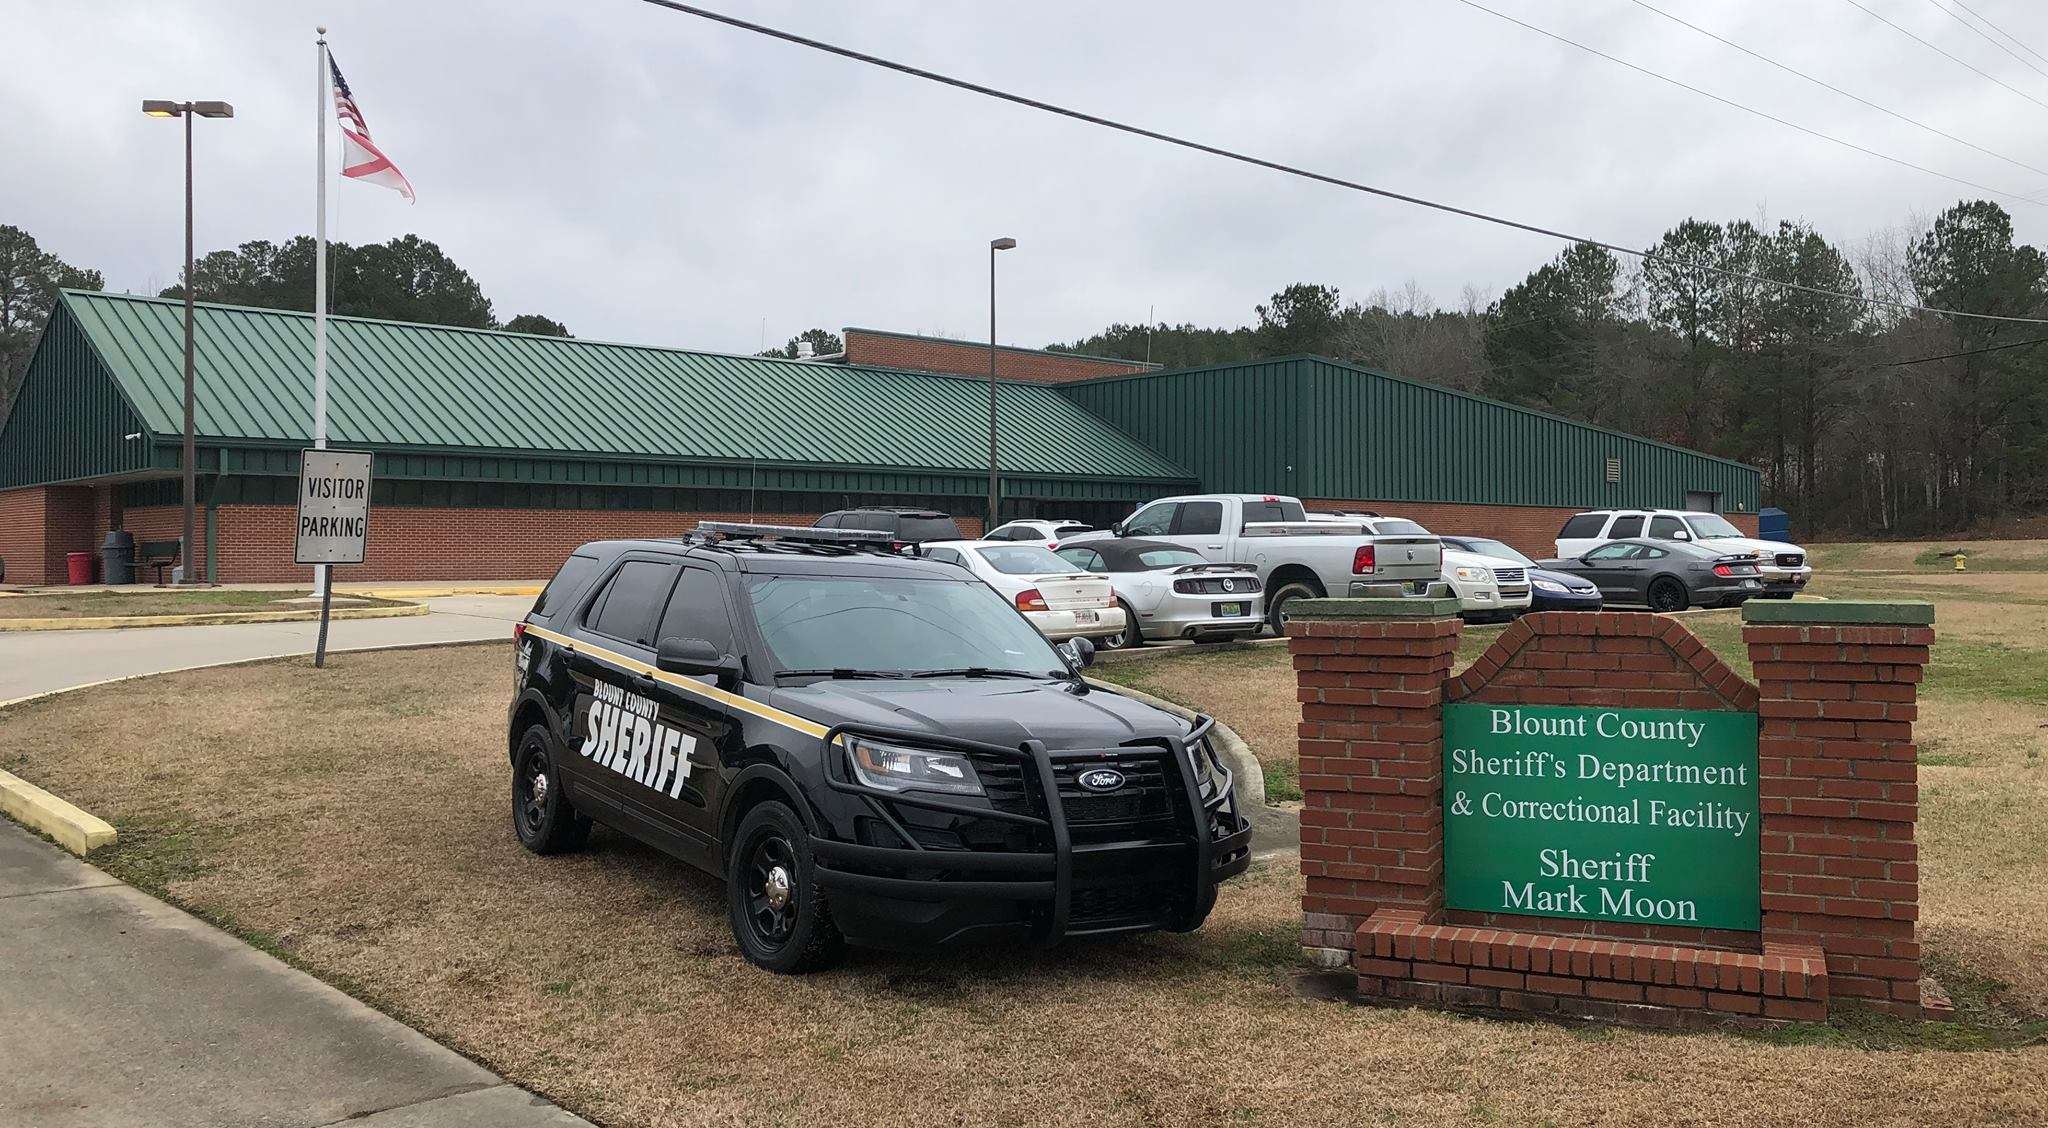 BLOUNT COUNTY SHERIFF: 'We are not just opening the gates and letting criminals run out of the doors'